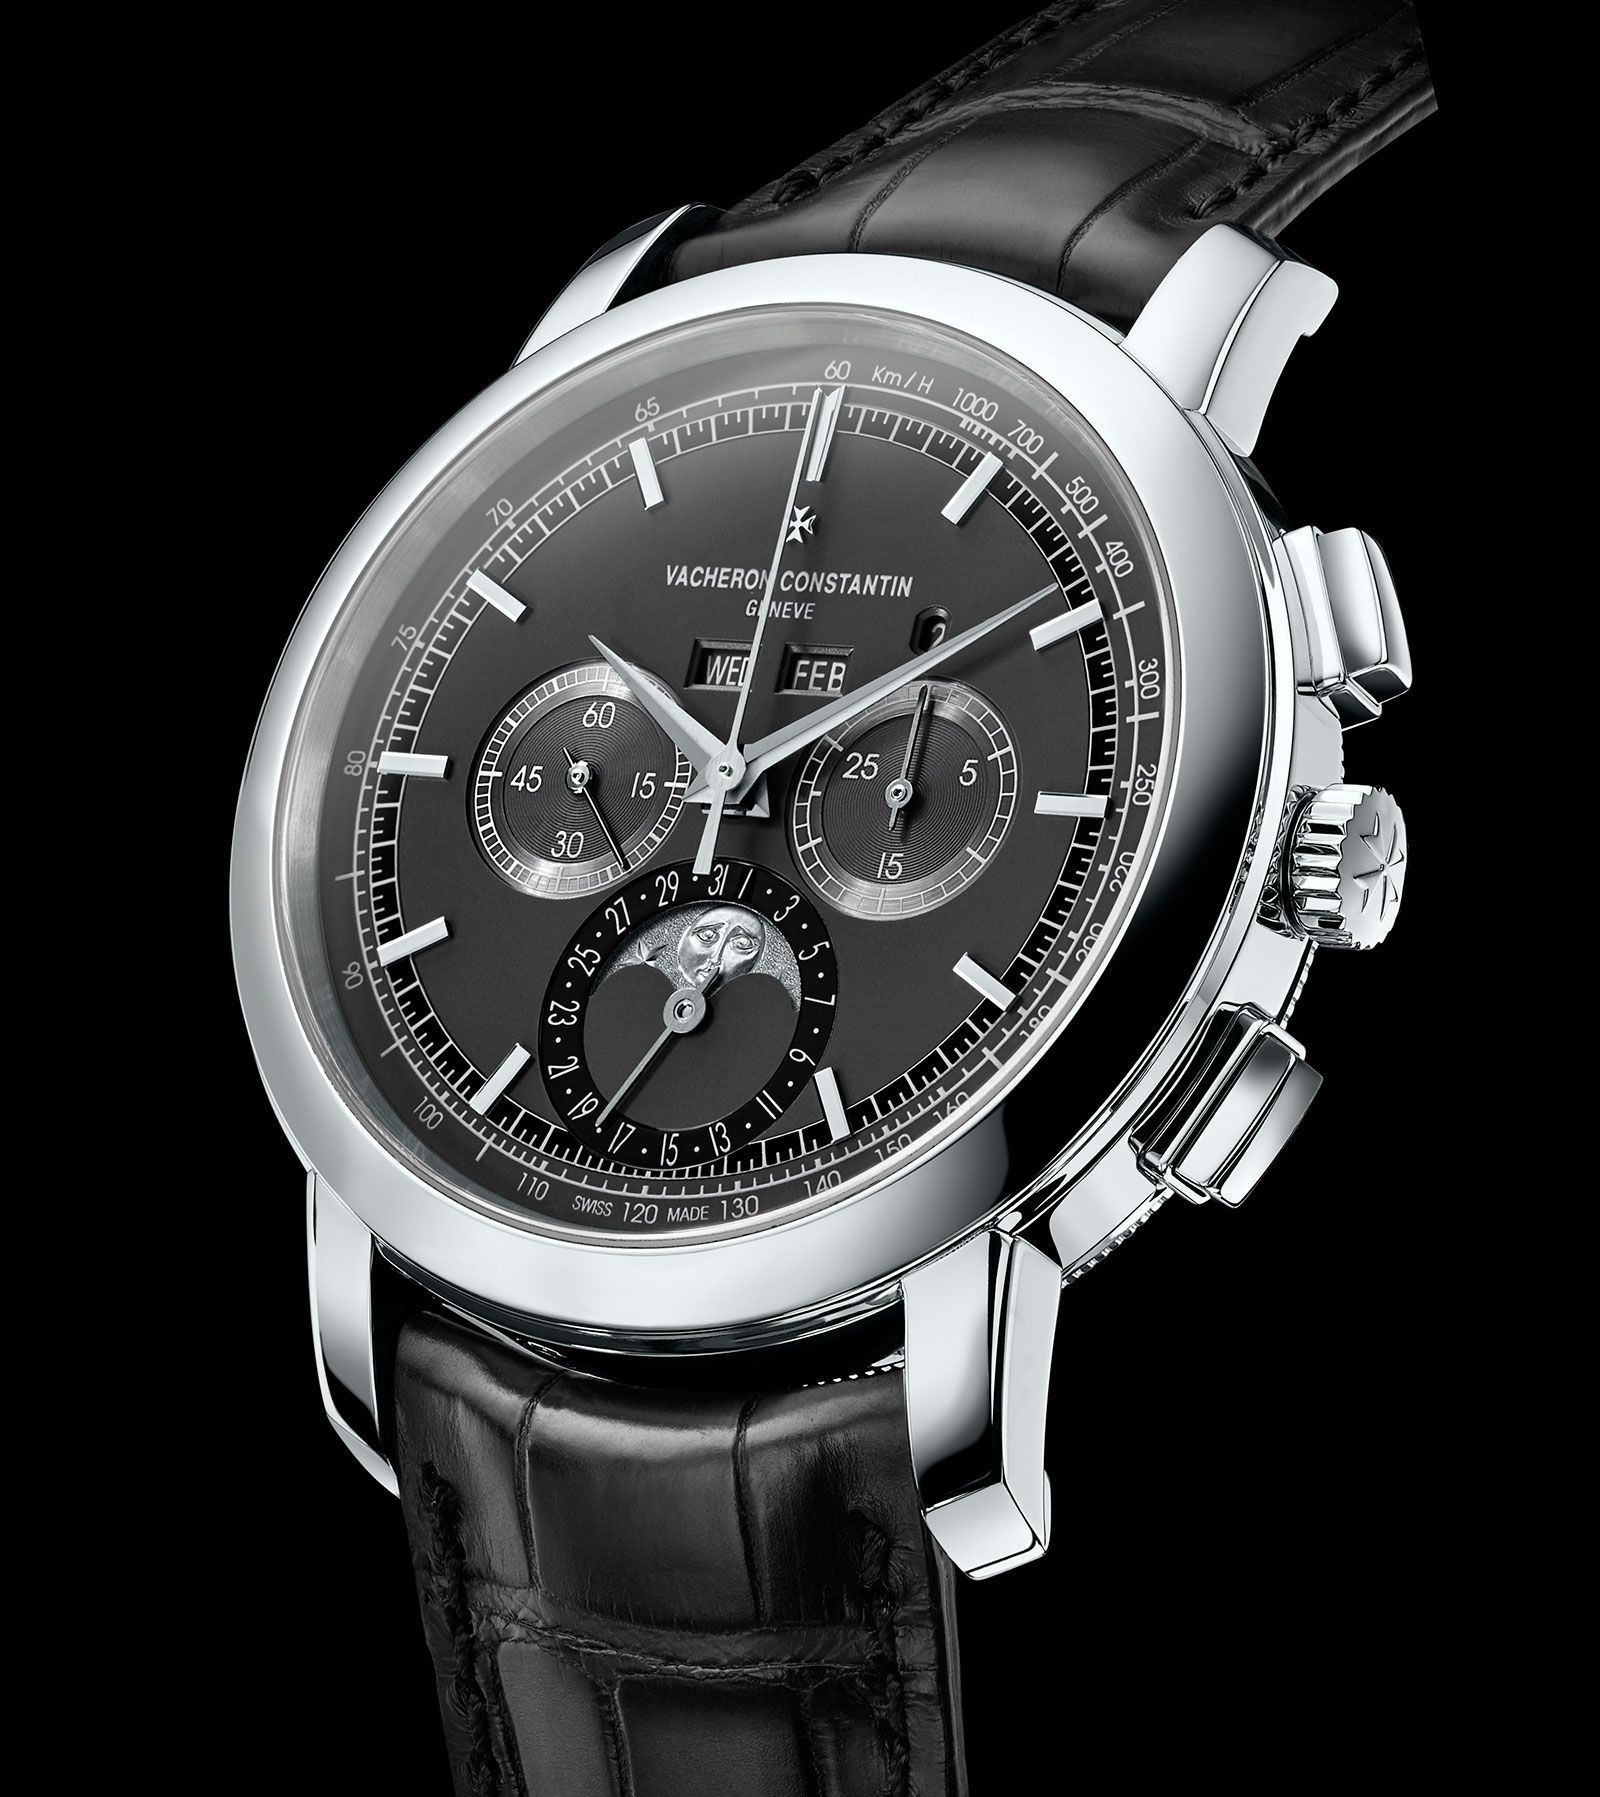 Introducing The New Improved Vacheron Constantin Traditionnelle Chronograph Perpetual Calendar Watche Luxury Watches For Men Watches For Men Elegant Watches